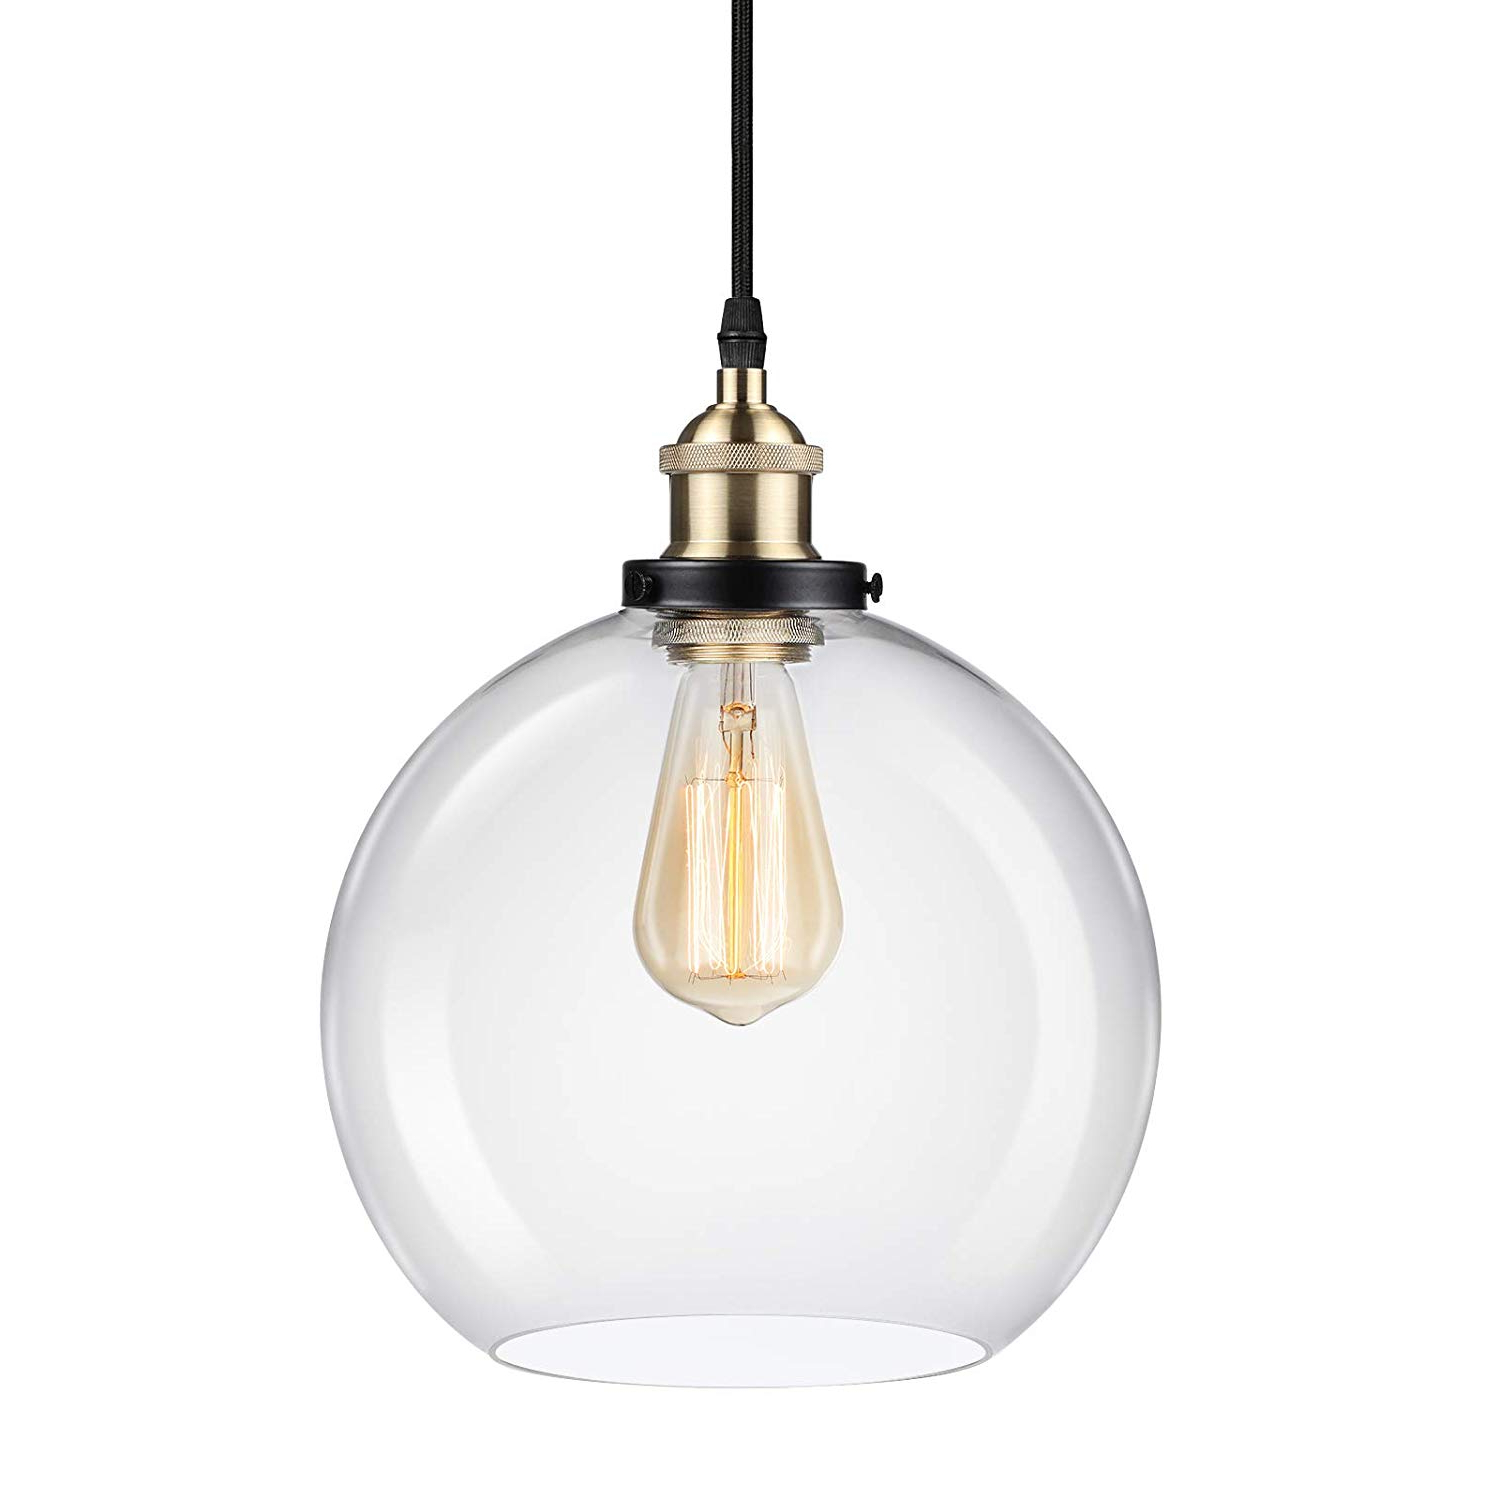 Most Recent Ascher Industrial Edison Vintage Pendant Light, Clear Glass Shade 1 Light  Ceiling Light Fixture, Antique Brass Brushed E26 Socket,  (View 4 of 25)